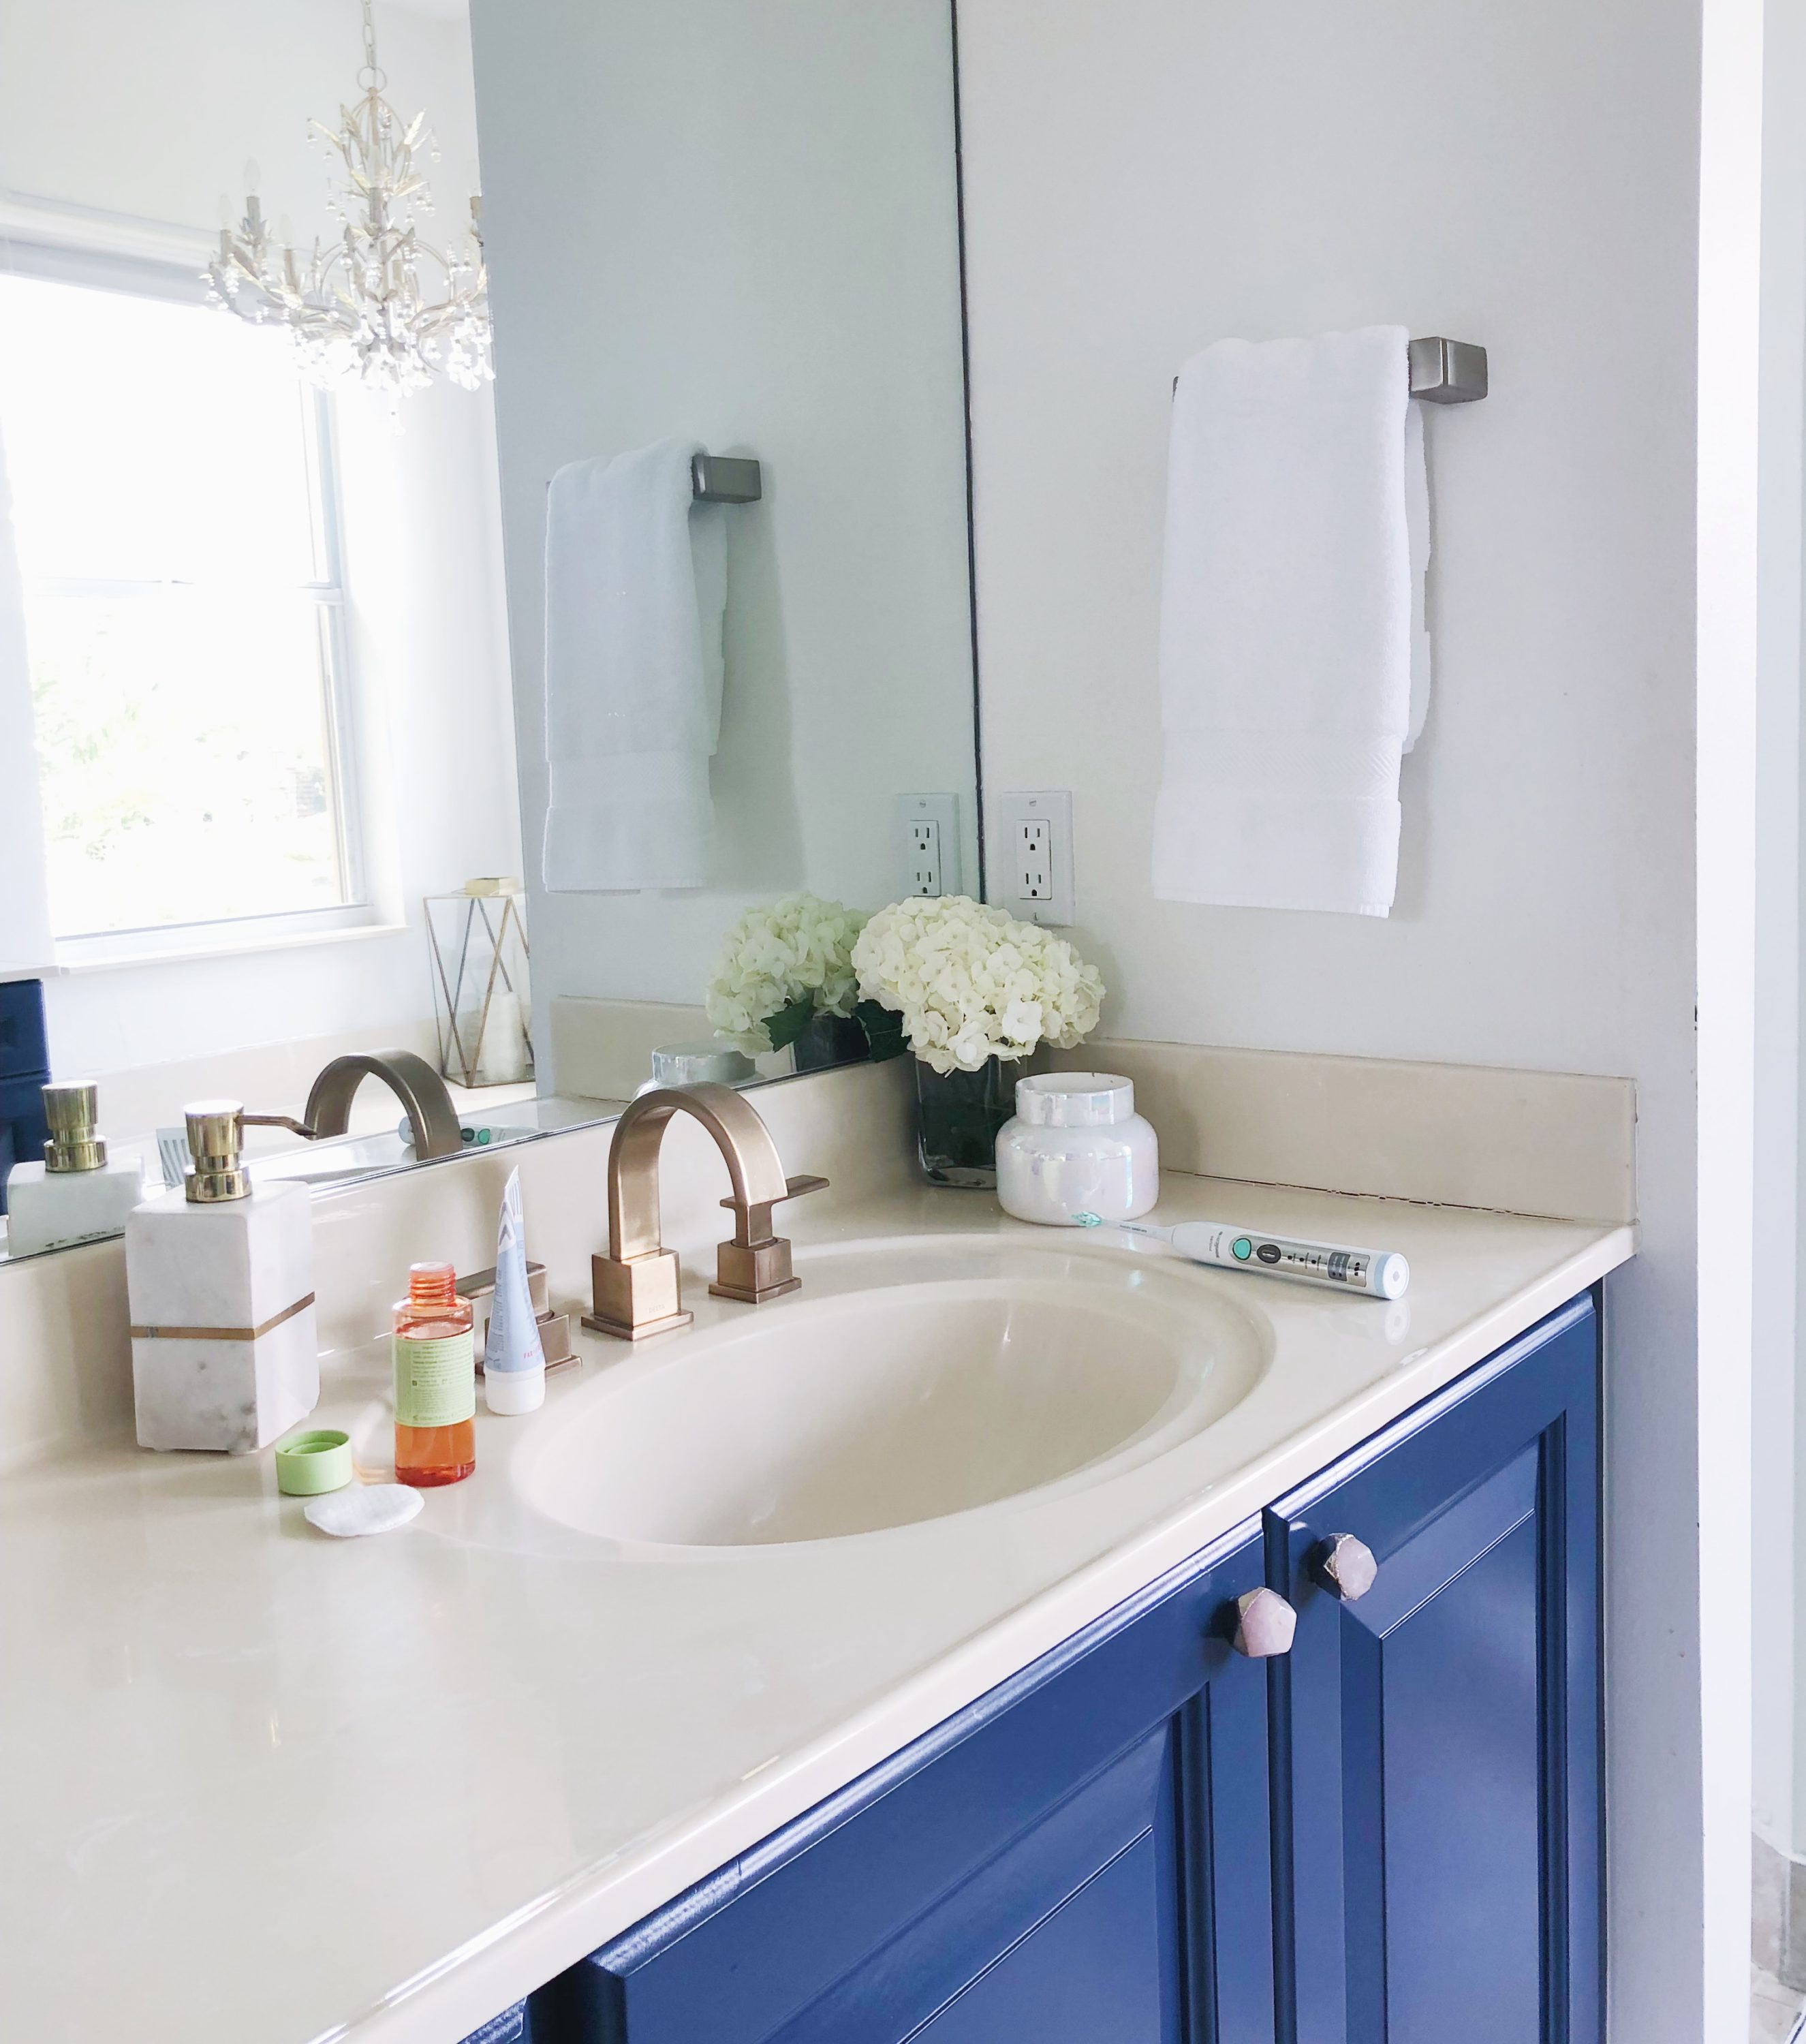 Master Bathroom with DIY blue cabinets and gold hardware | Avon | My Nighttime Routine featured by popular Florida life and style blogger The Modern Savvy